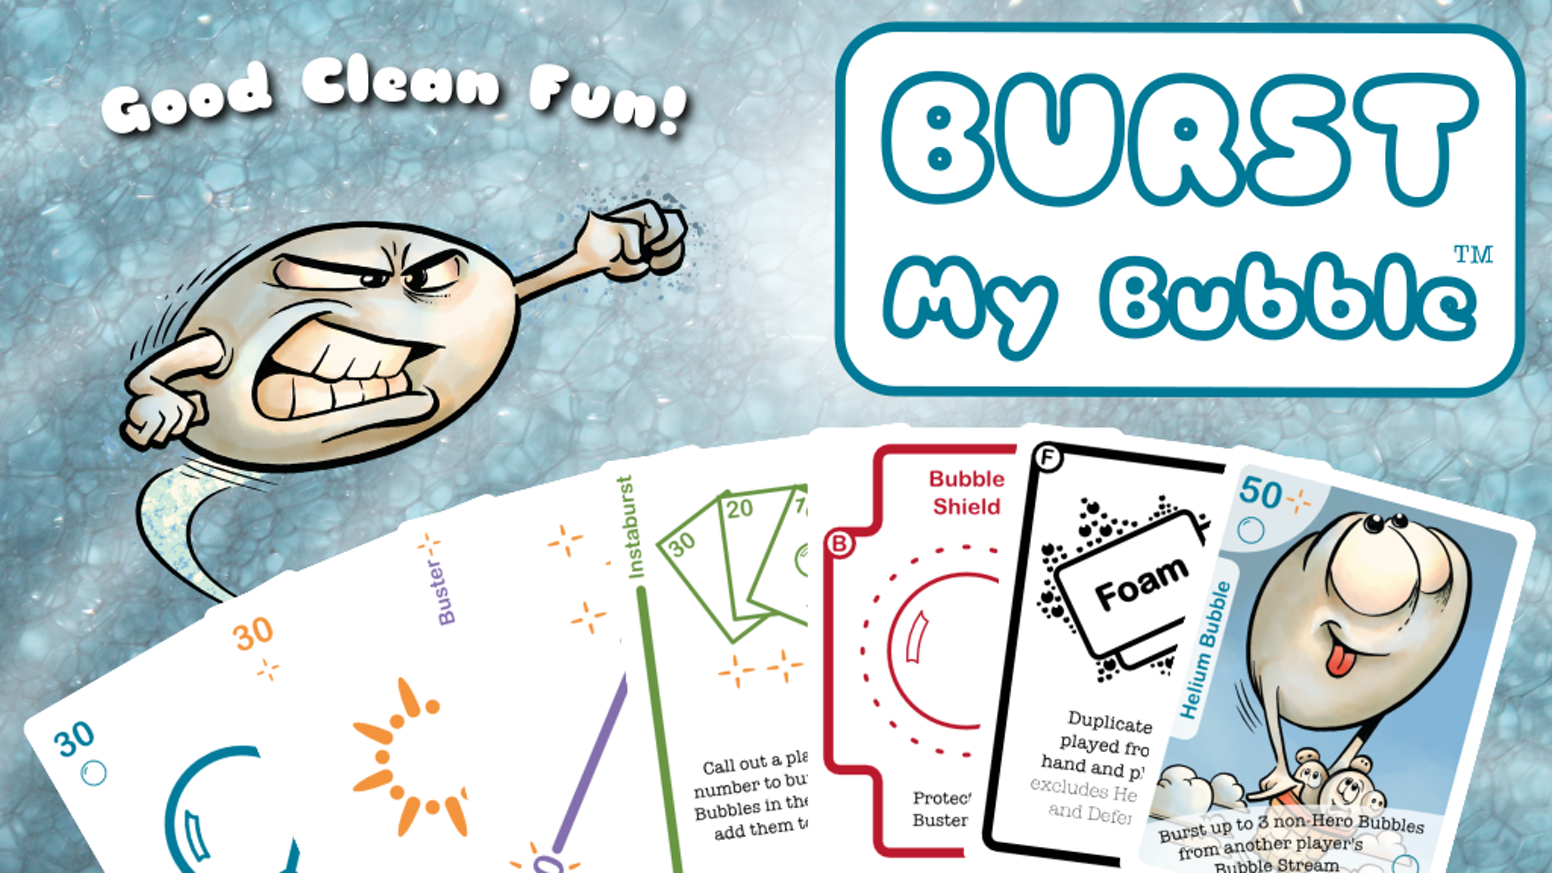 Good clean fun! Family-friendly strategy card game.